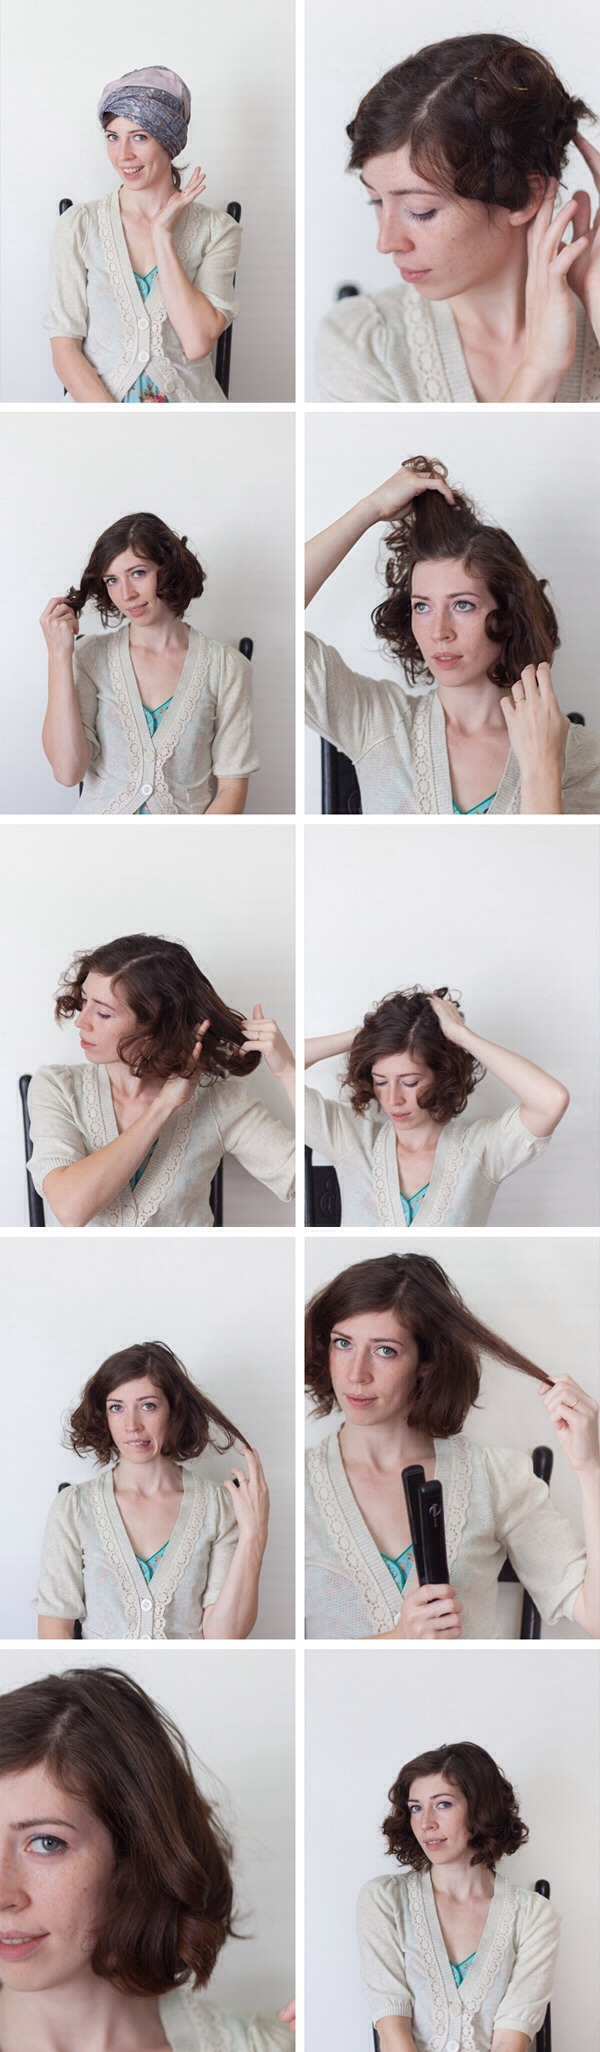 Curl Hair Easily Step By Step In So Many Ways Trusper